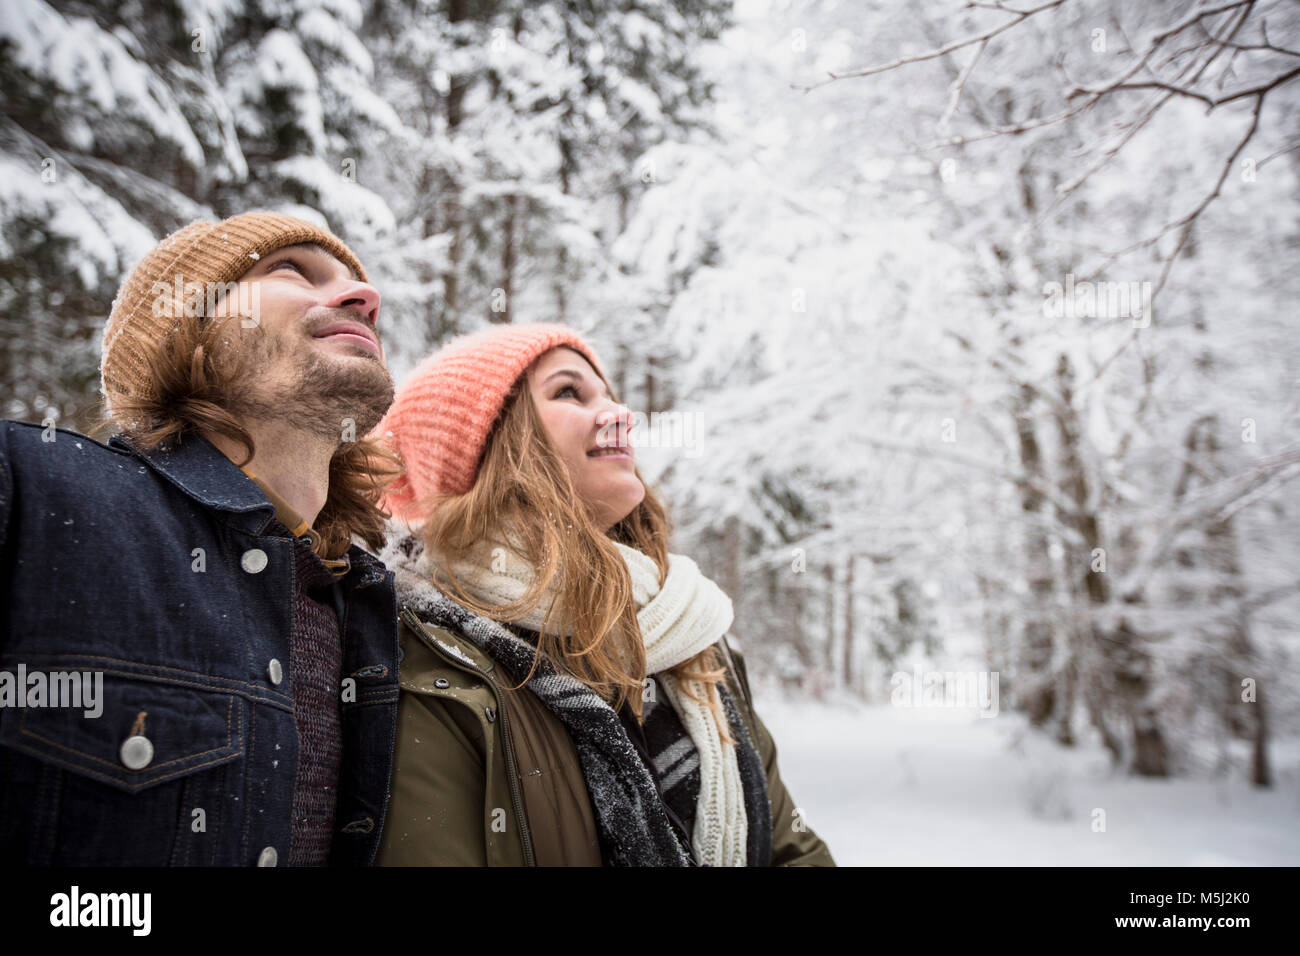 Smiling couple in winter forest watching snow fall Stock Photo